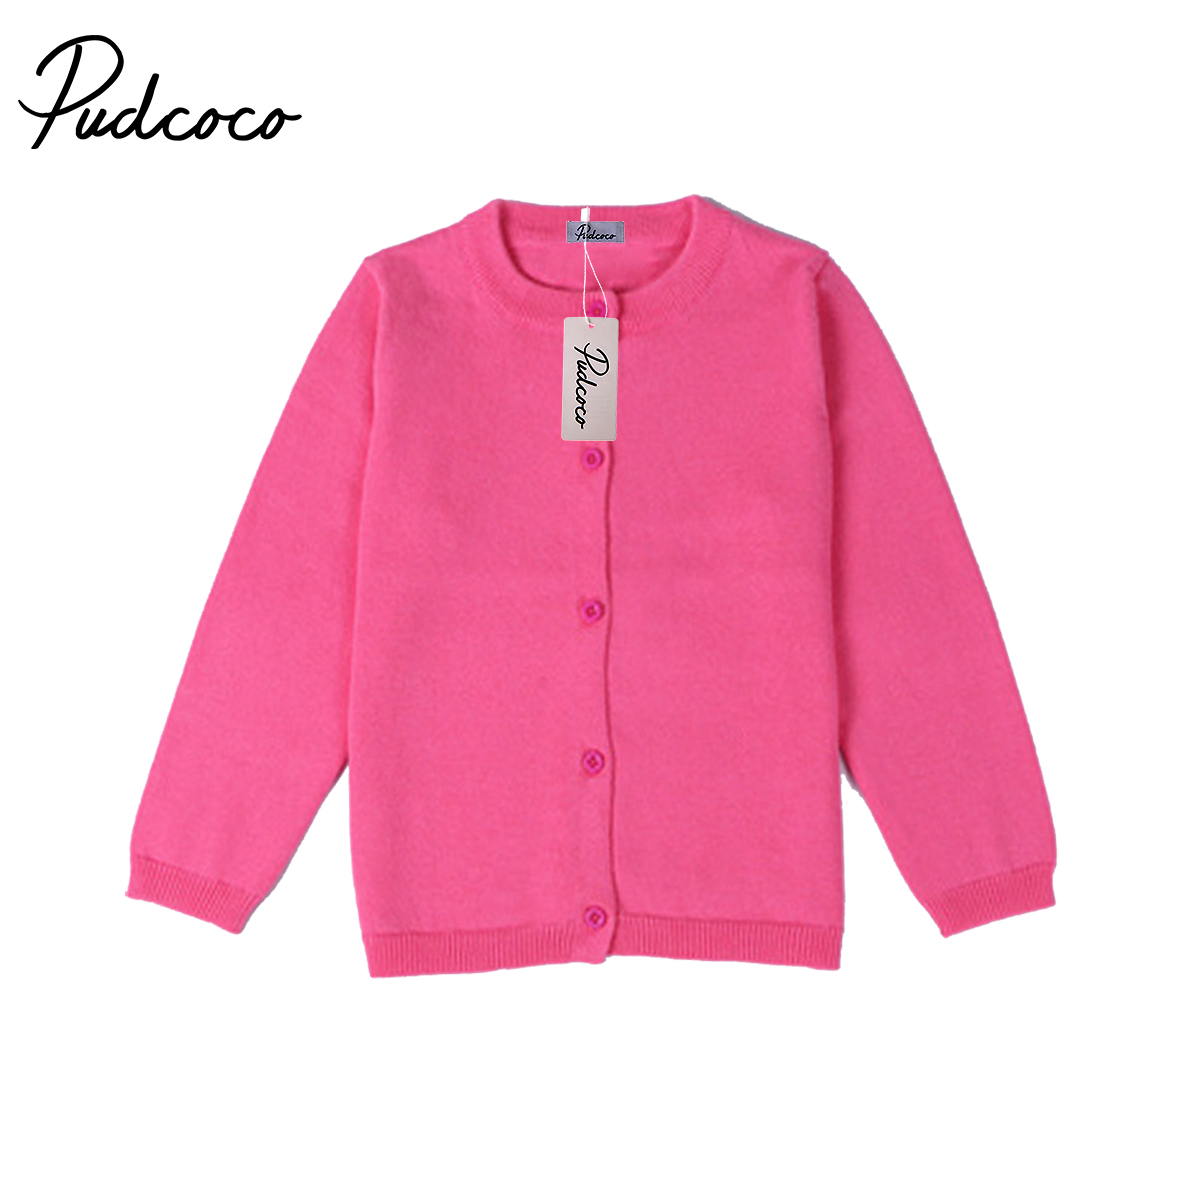 Pudcoco 2017 New Girl Jackets Autumn Spring Cotton Blend Long Sleeve Knitted Kid Candy-colored Cardigan Jacket Infant Girls 1-6Y ...